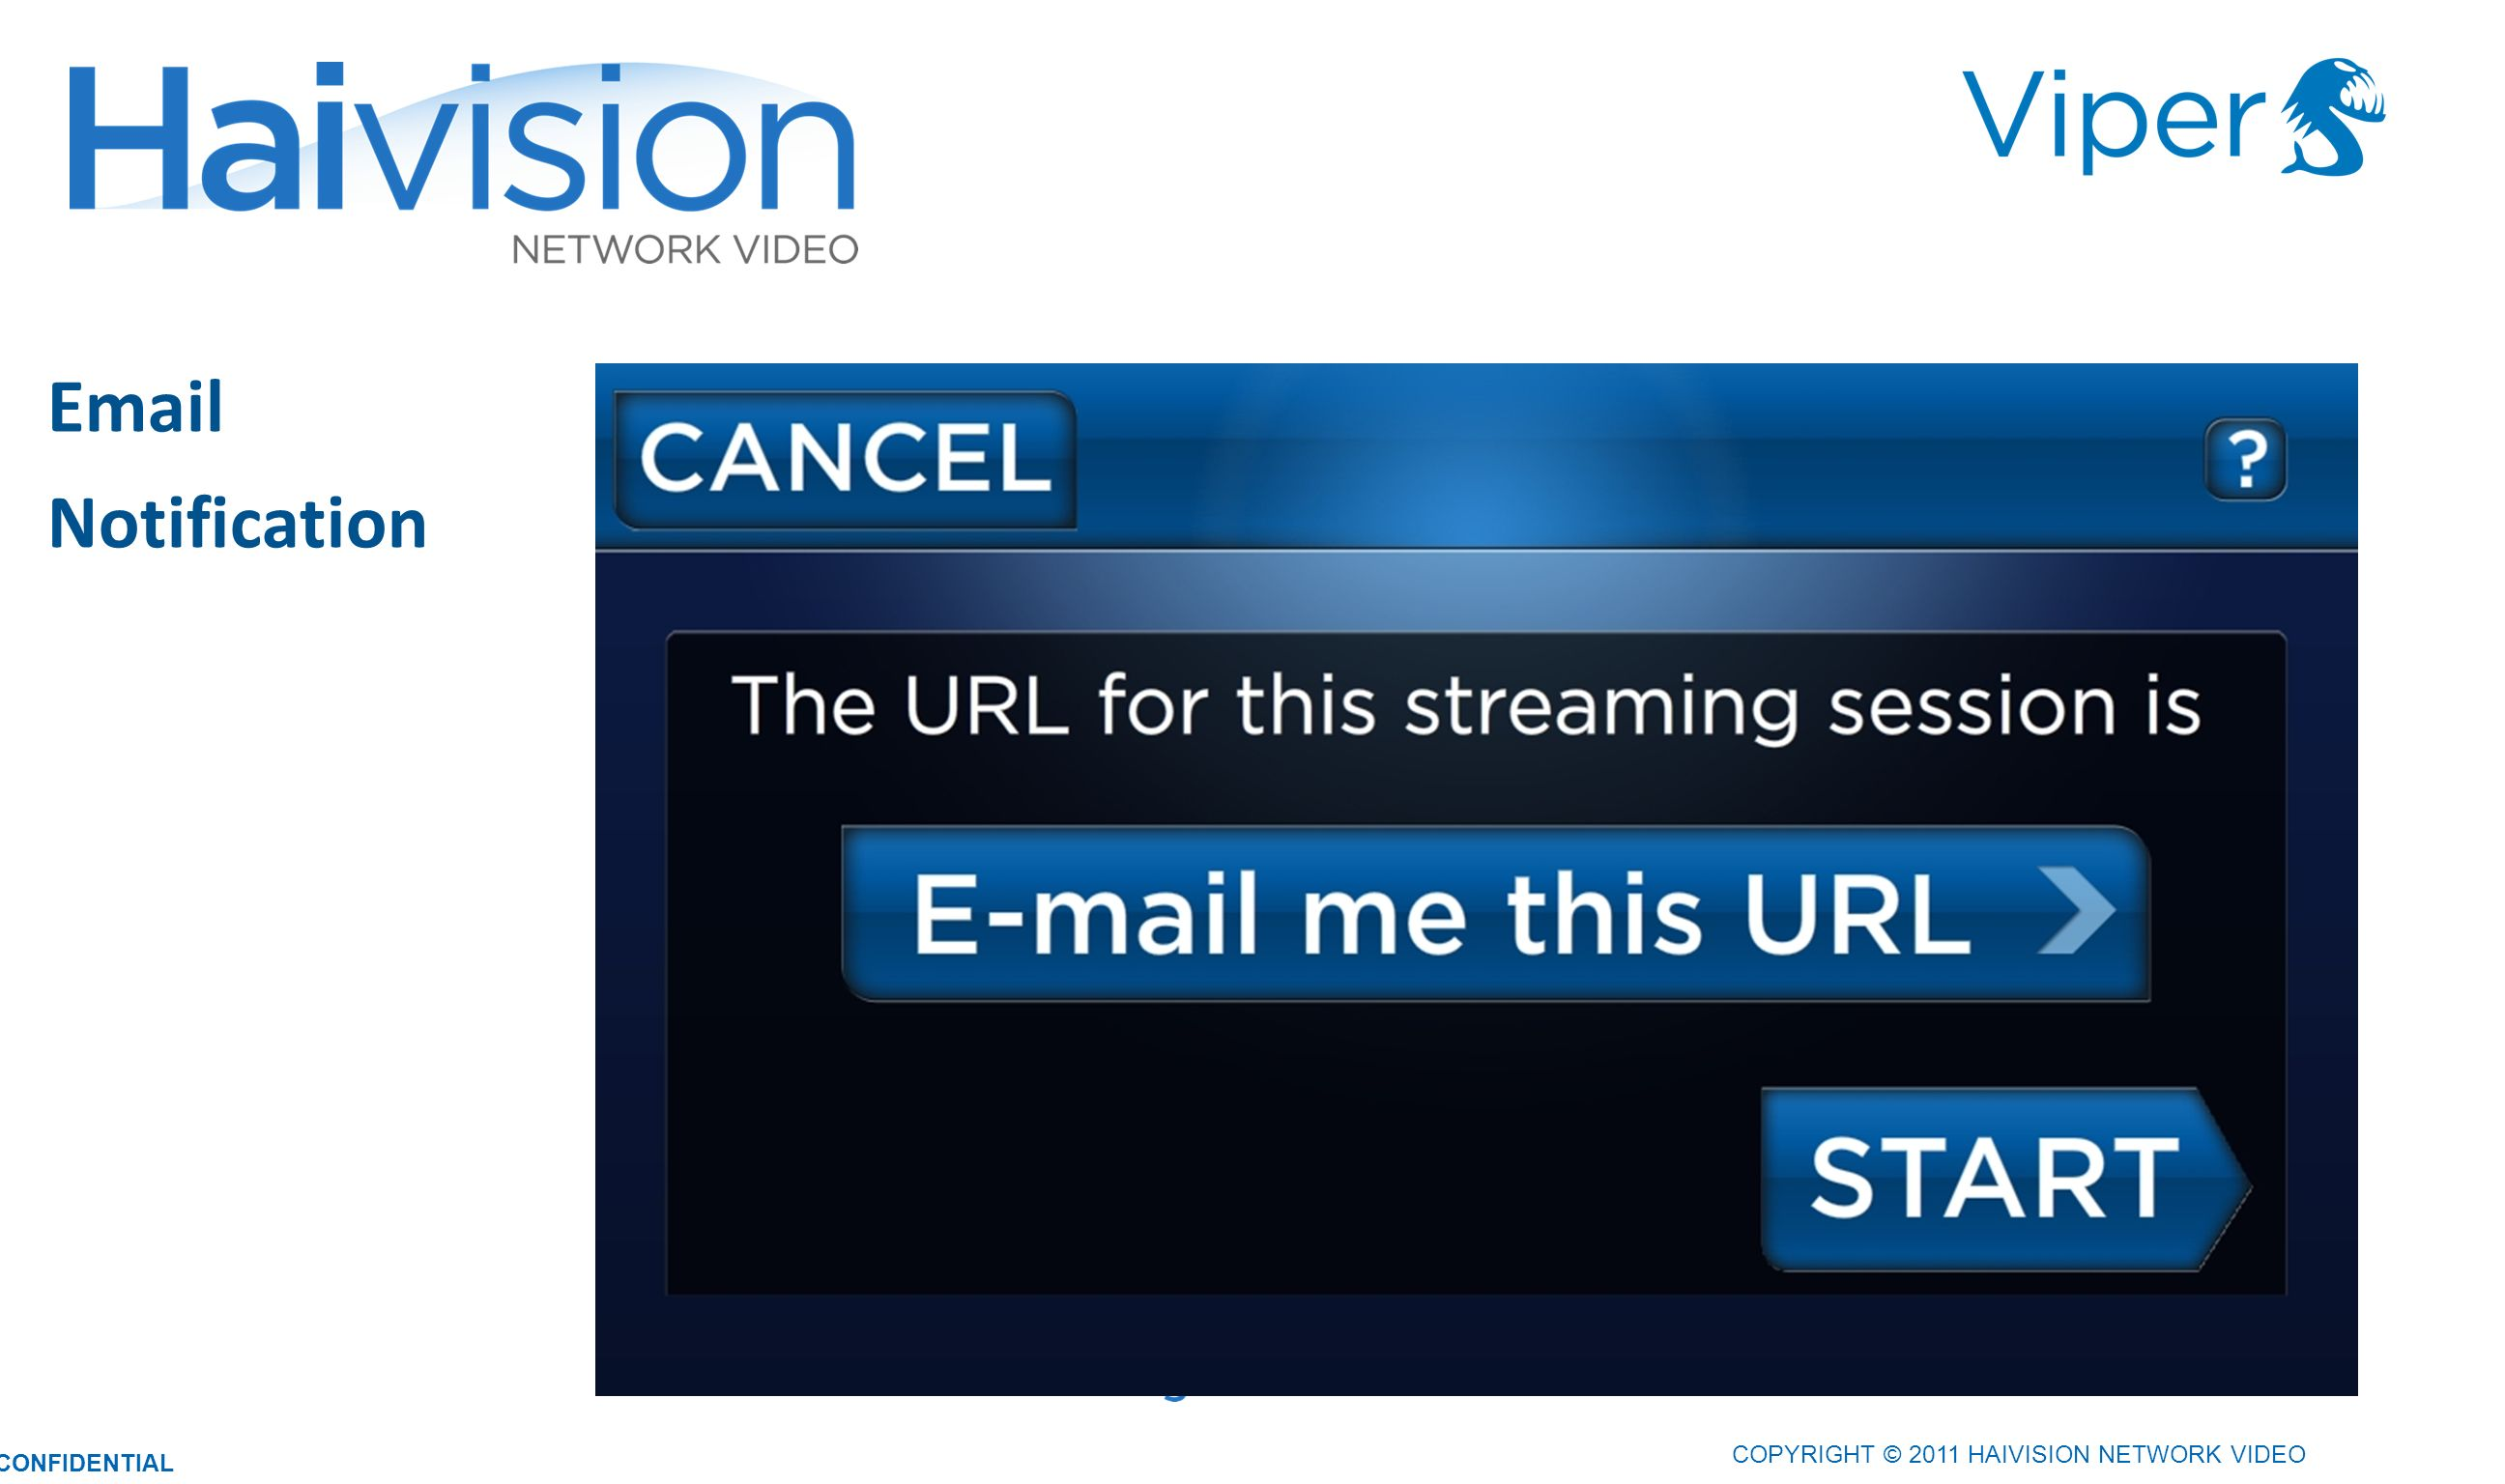 Email Notification 2727 COPYRIGHT © 2011 HAIVISION NETWORK VIDEO